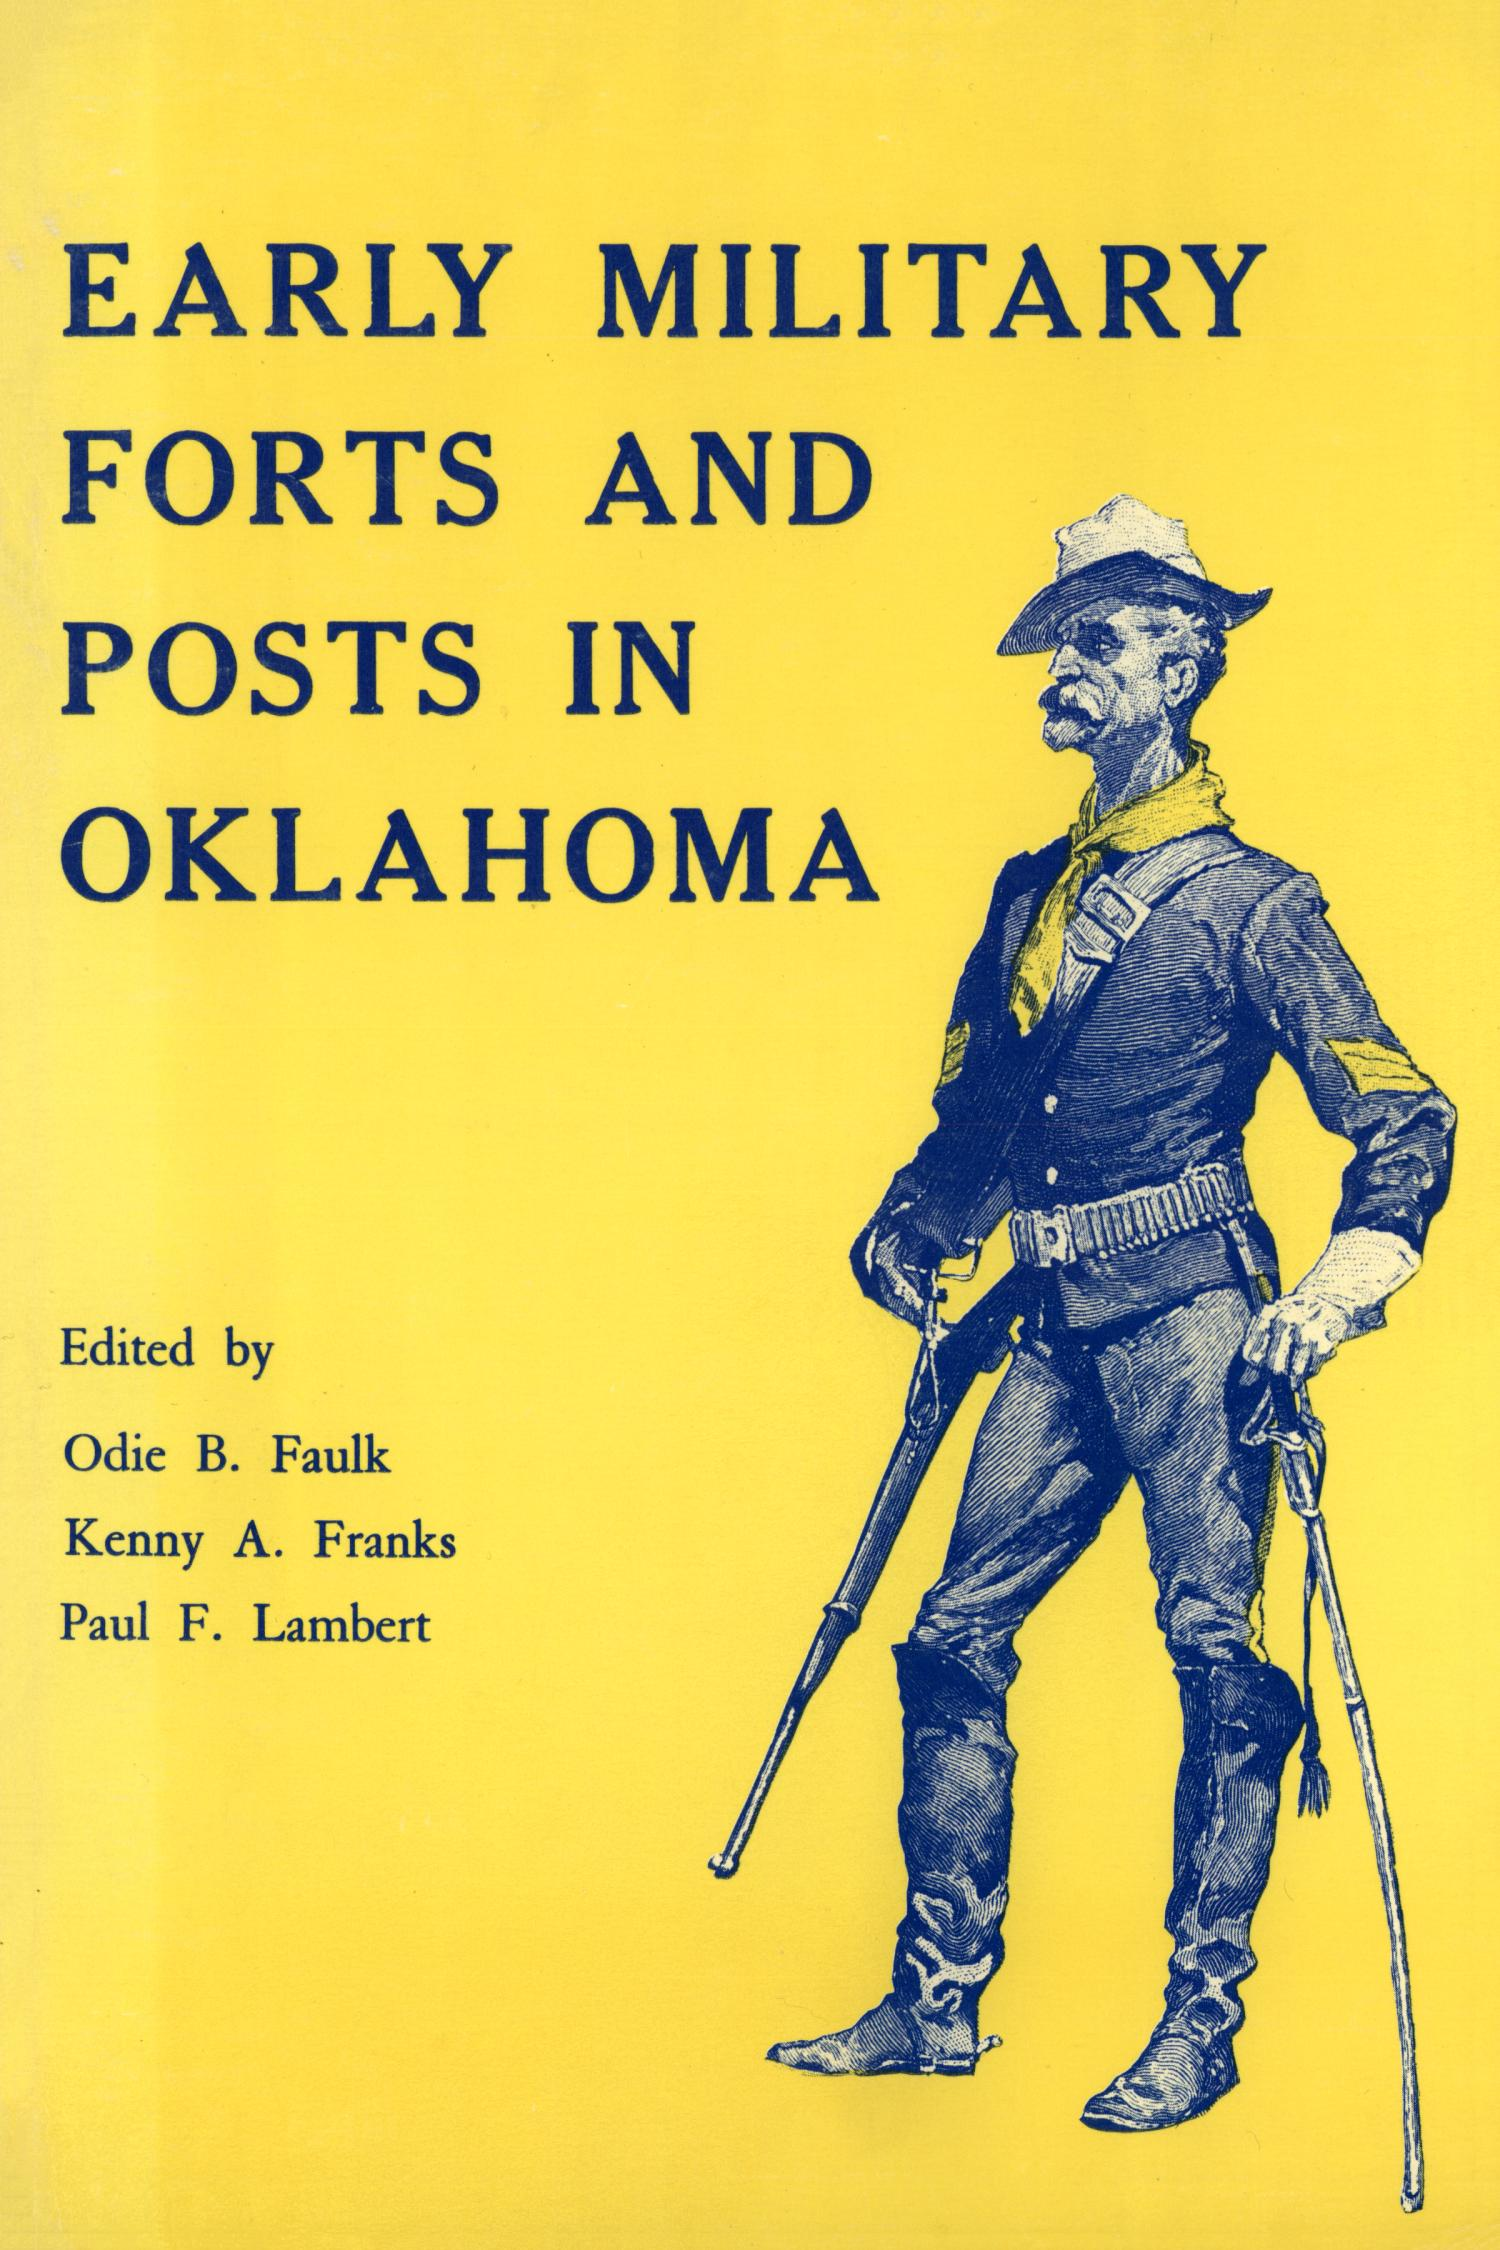 Early Military Forts and Posts in Oklahoma                                                                                                      Front Cover